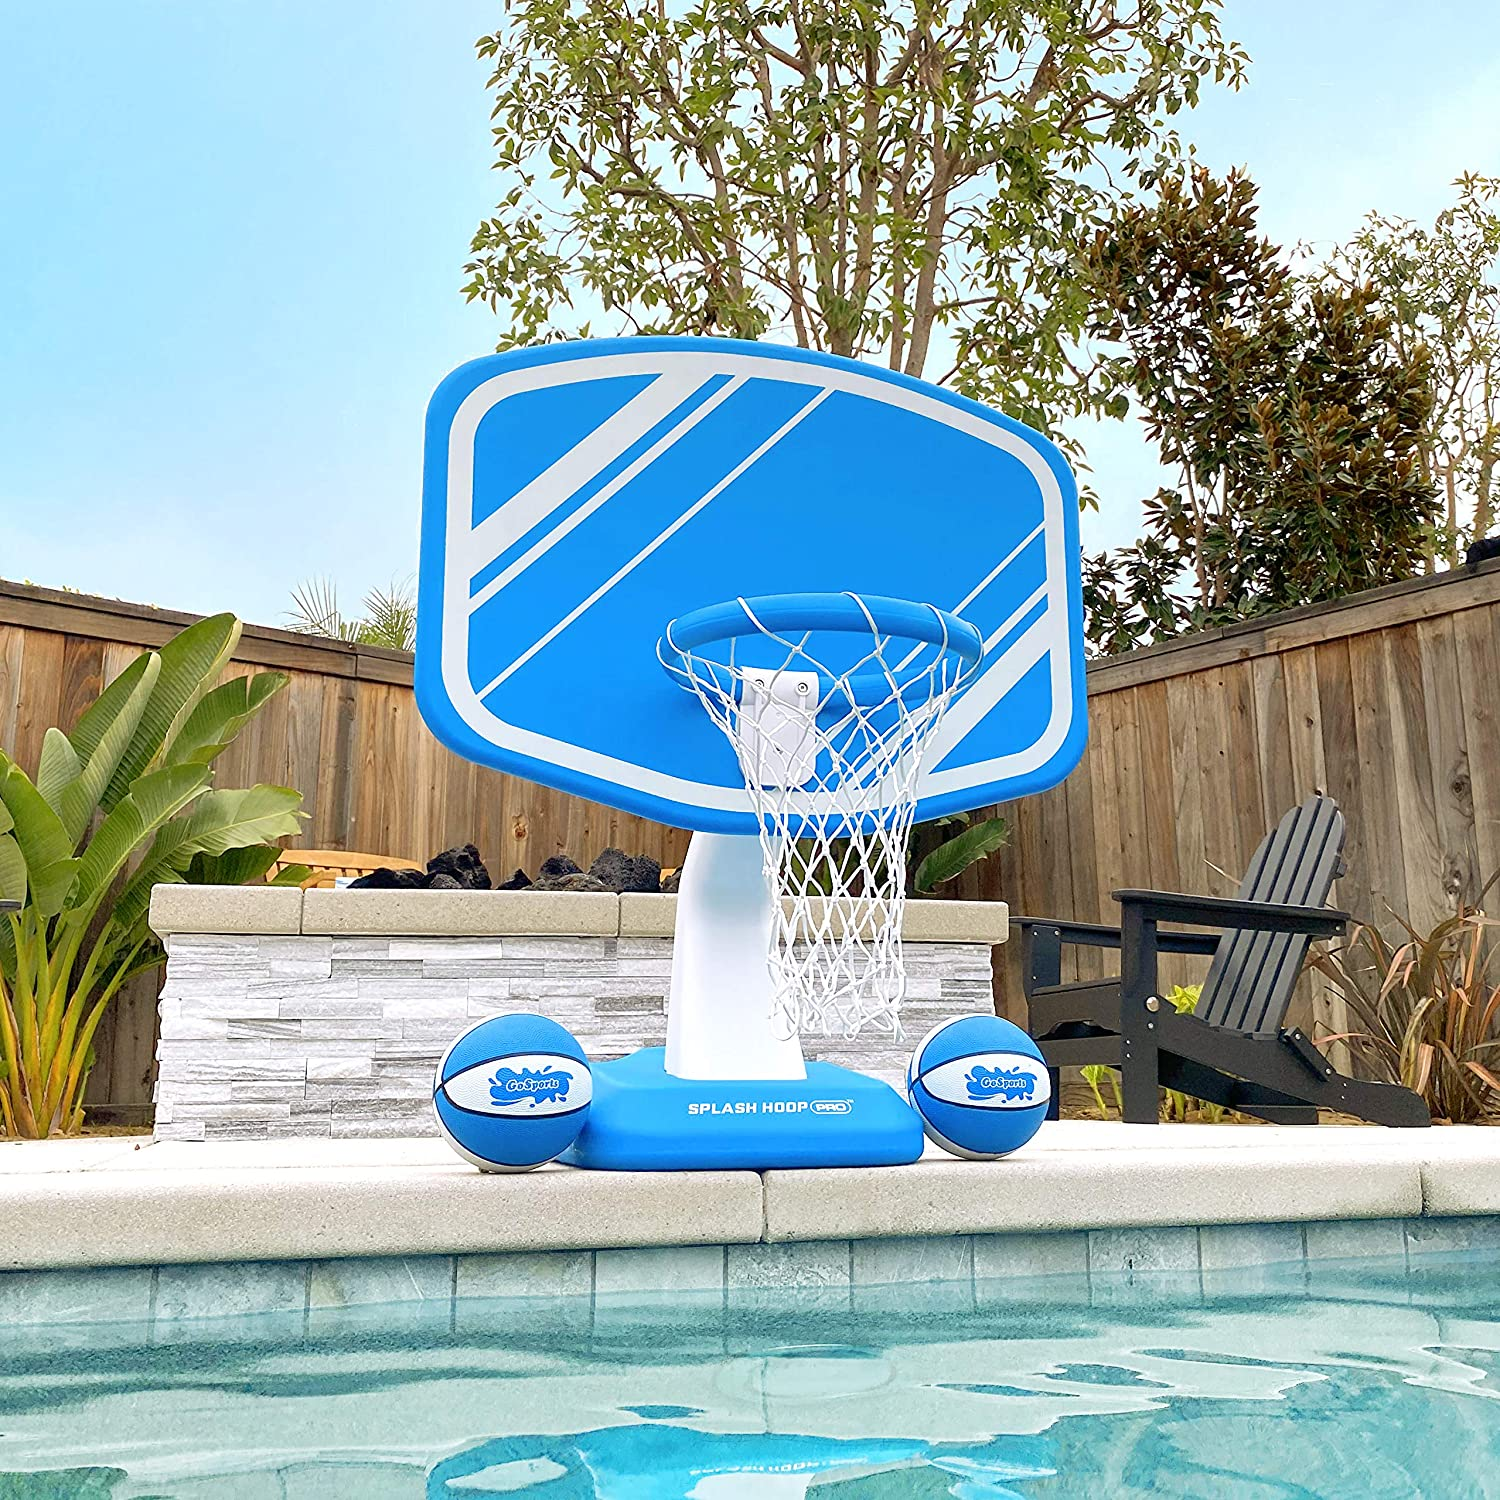 GoSports Splash Hoop Pro Pool Basketball Game, Includes Poolside Water Basketball Hoop, 2 Balls and Pump: Sports & Outdoors